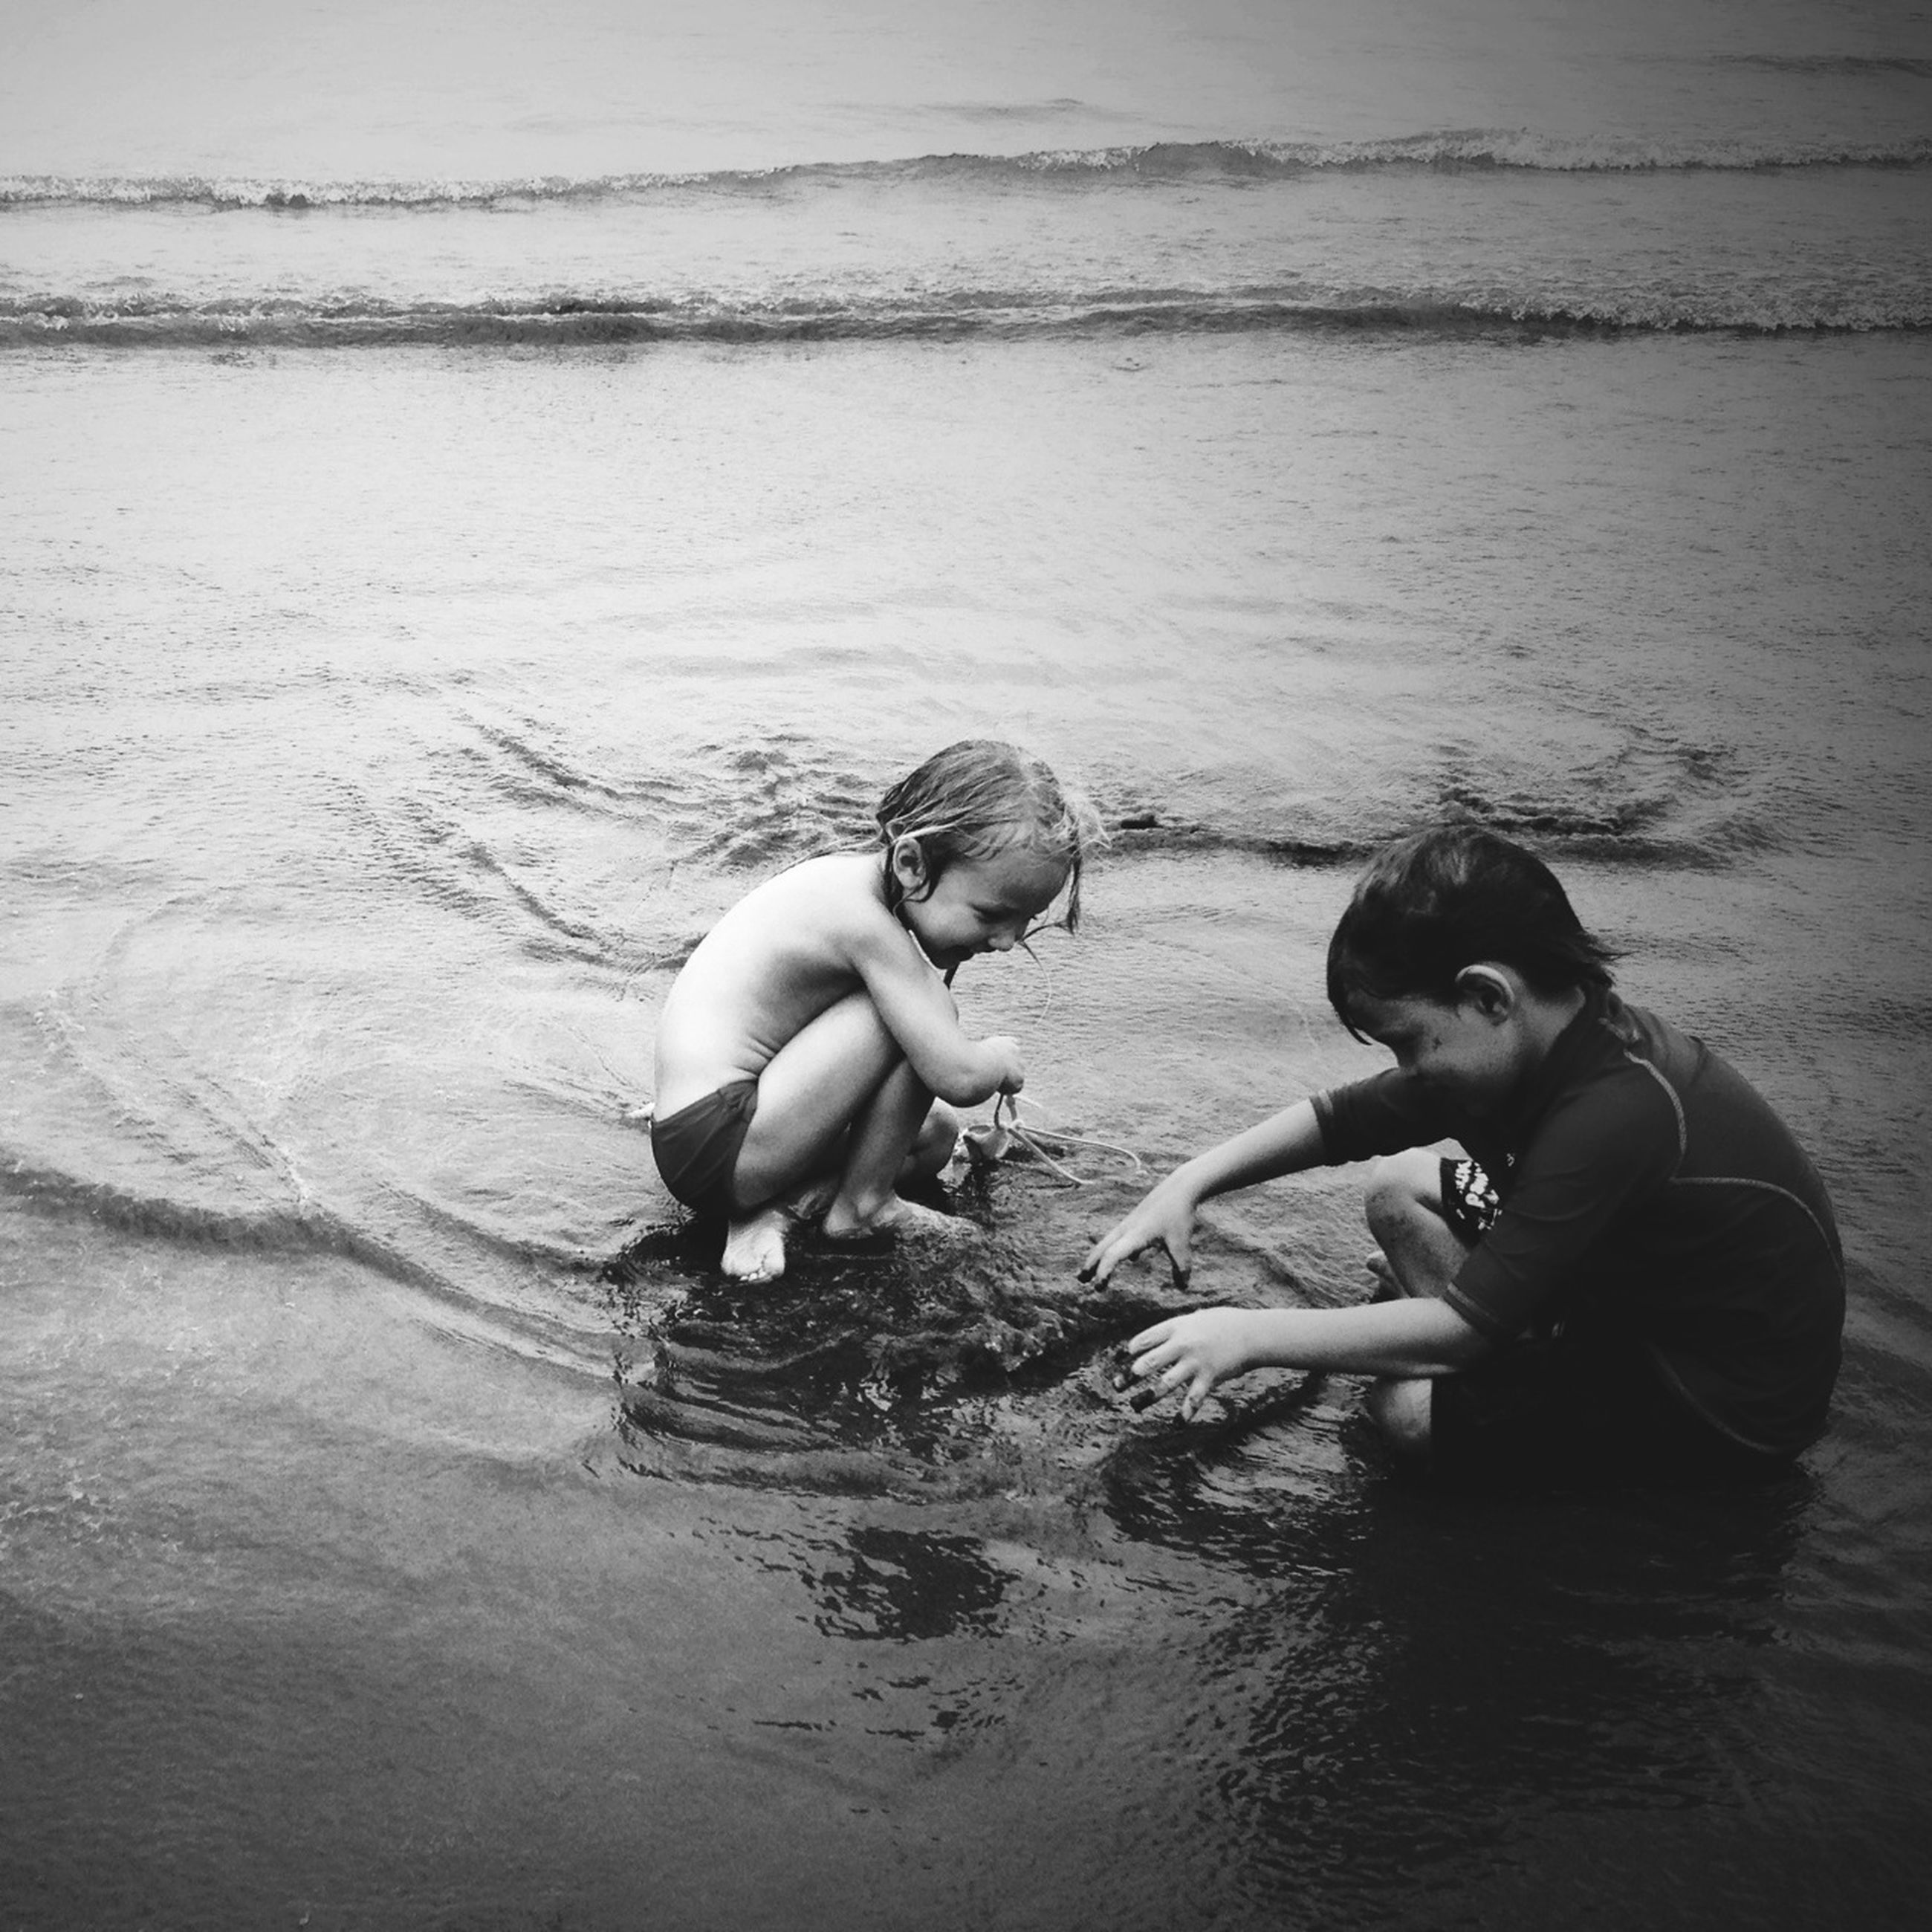 water, lifestyles, childhood, leisure activity, sea, beach, togetherness, lake, boys, nature, swimming, shore, full length, sitting, girls, day, elementary age, high angle view